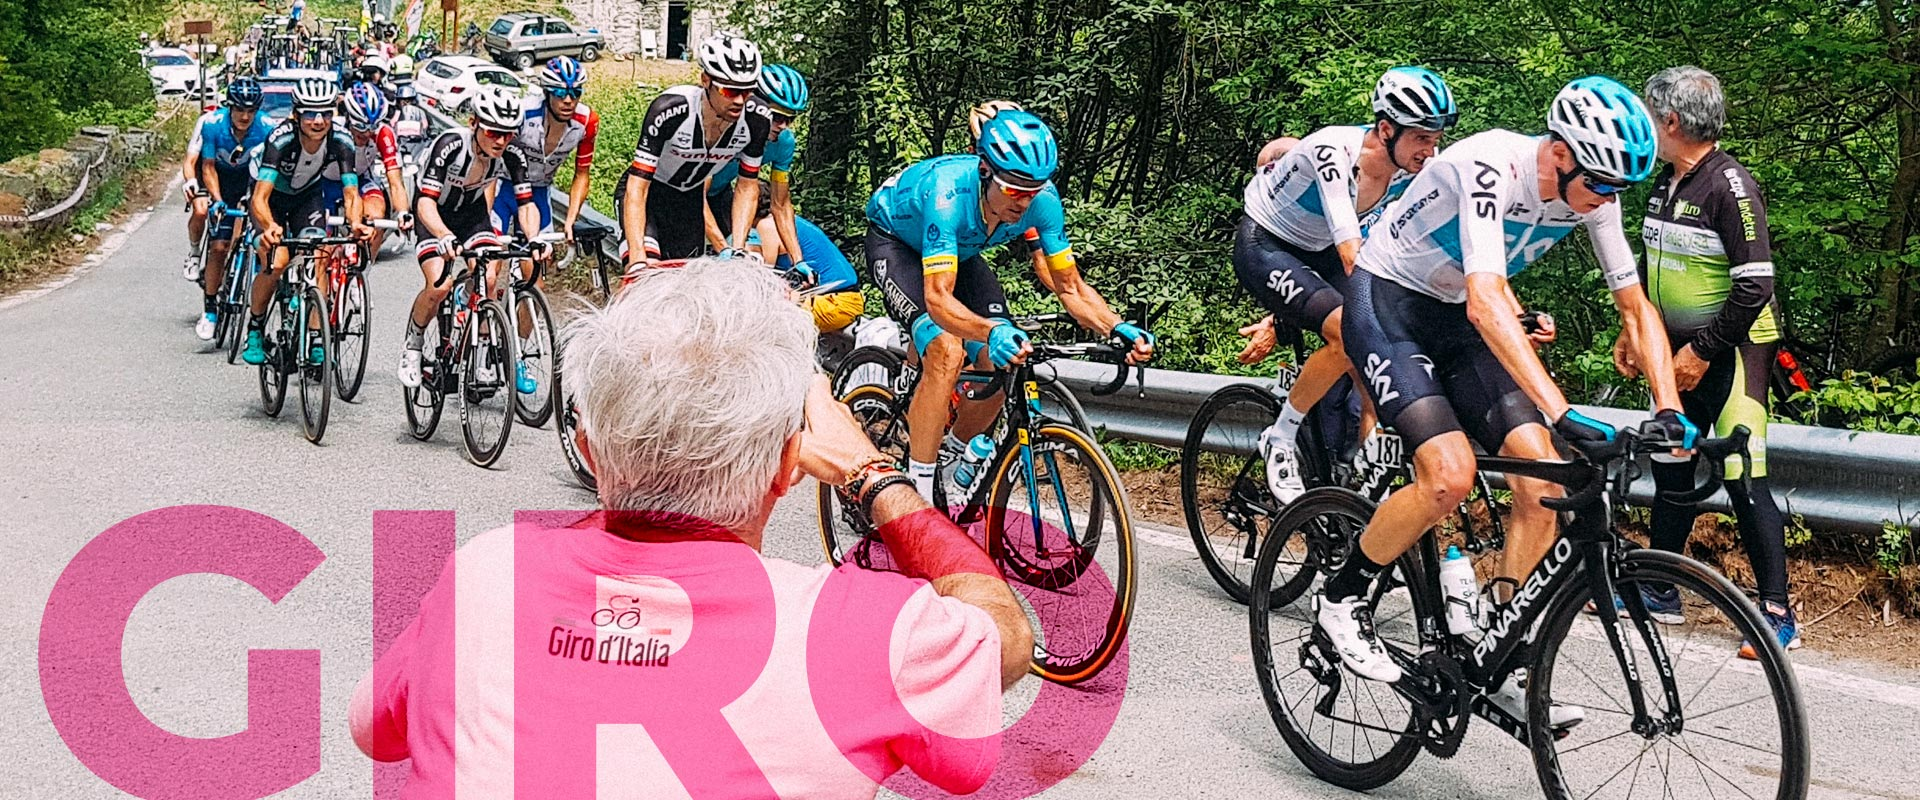 2019 Giro Tour Itinerary Available - Reserve your place and book your holiday